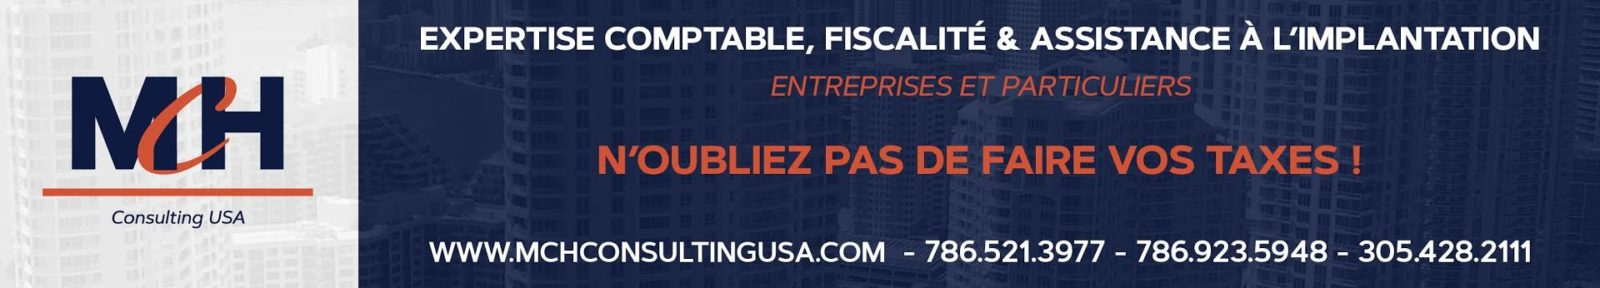 MCH Consulting - n'oubliez pas vos taxes